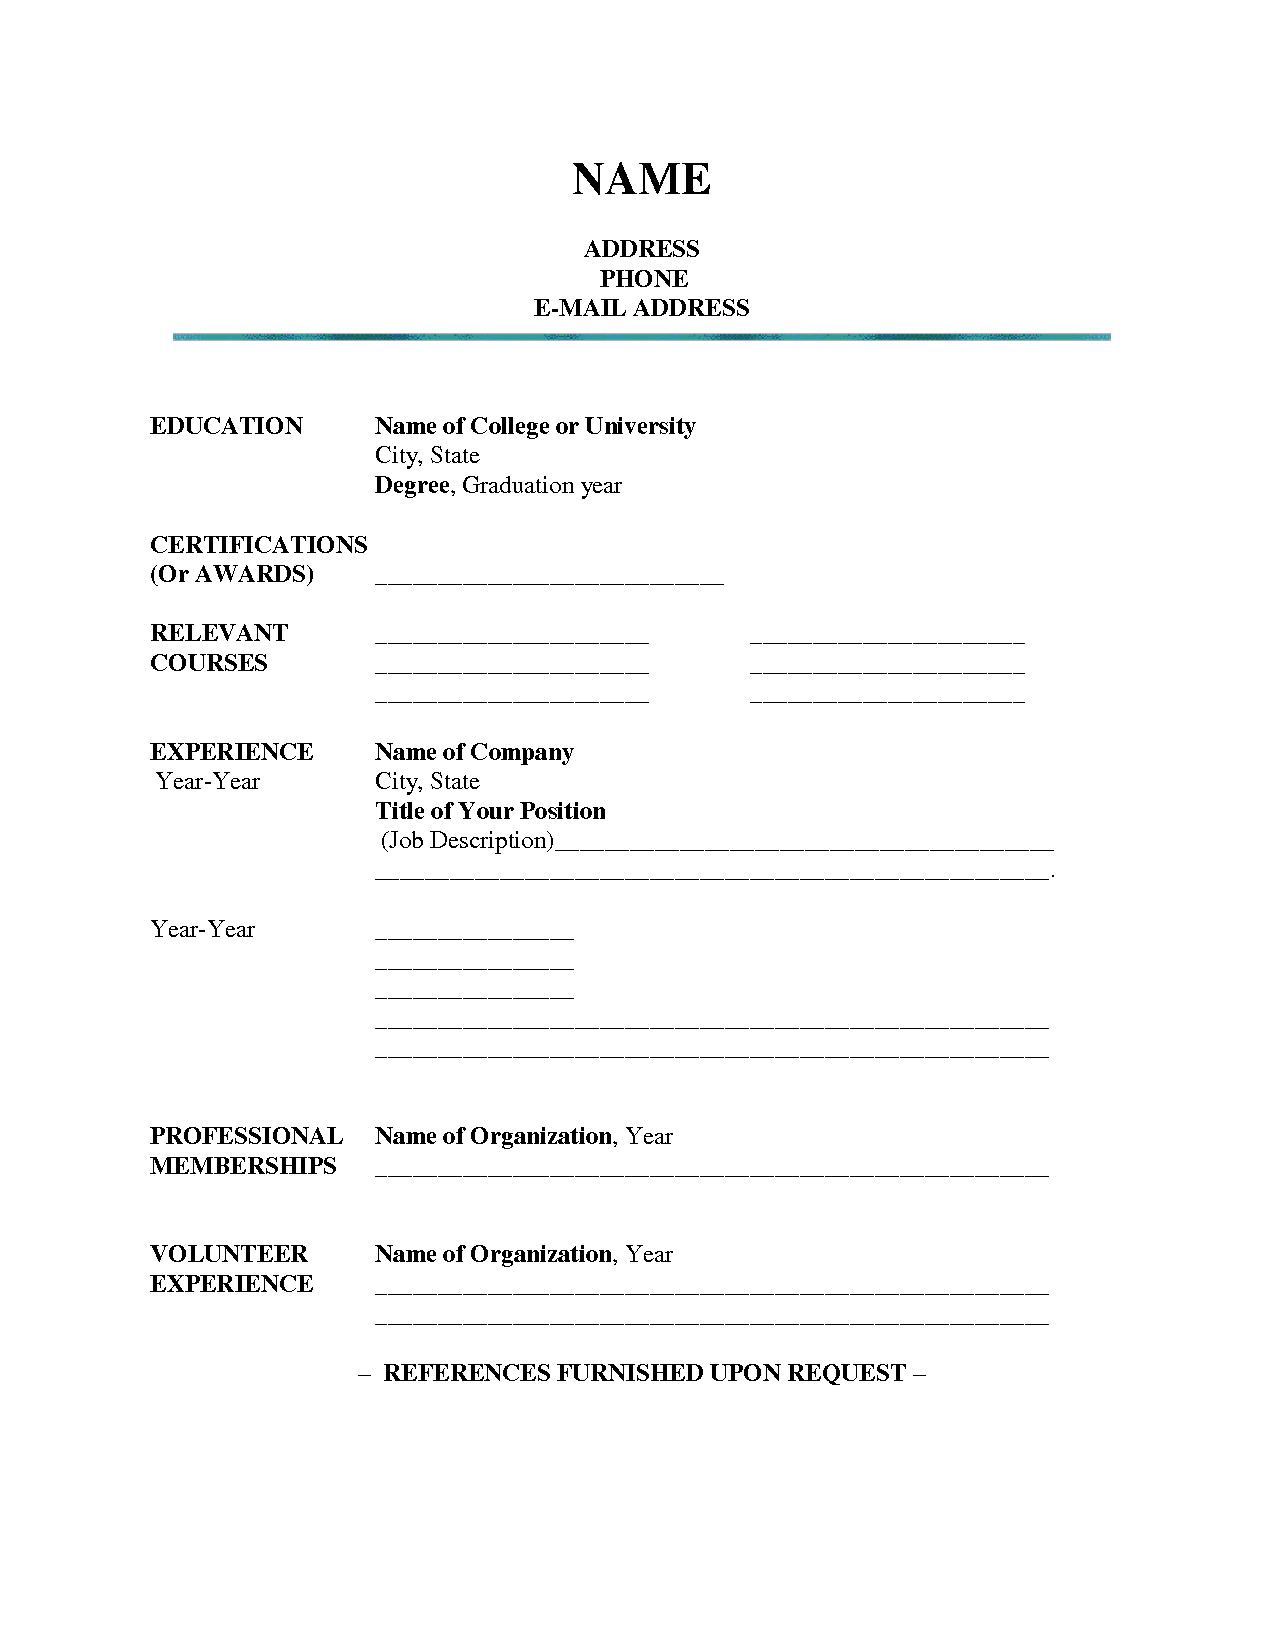 image result for professional cv empty - Empty Resume Format